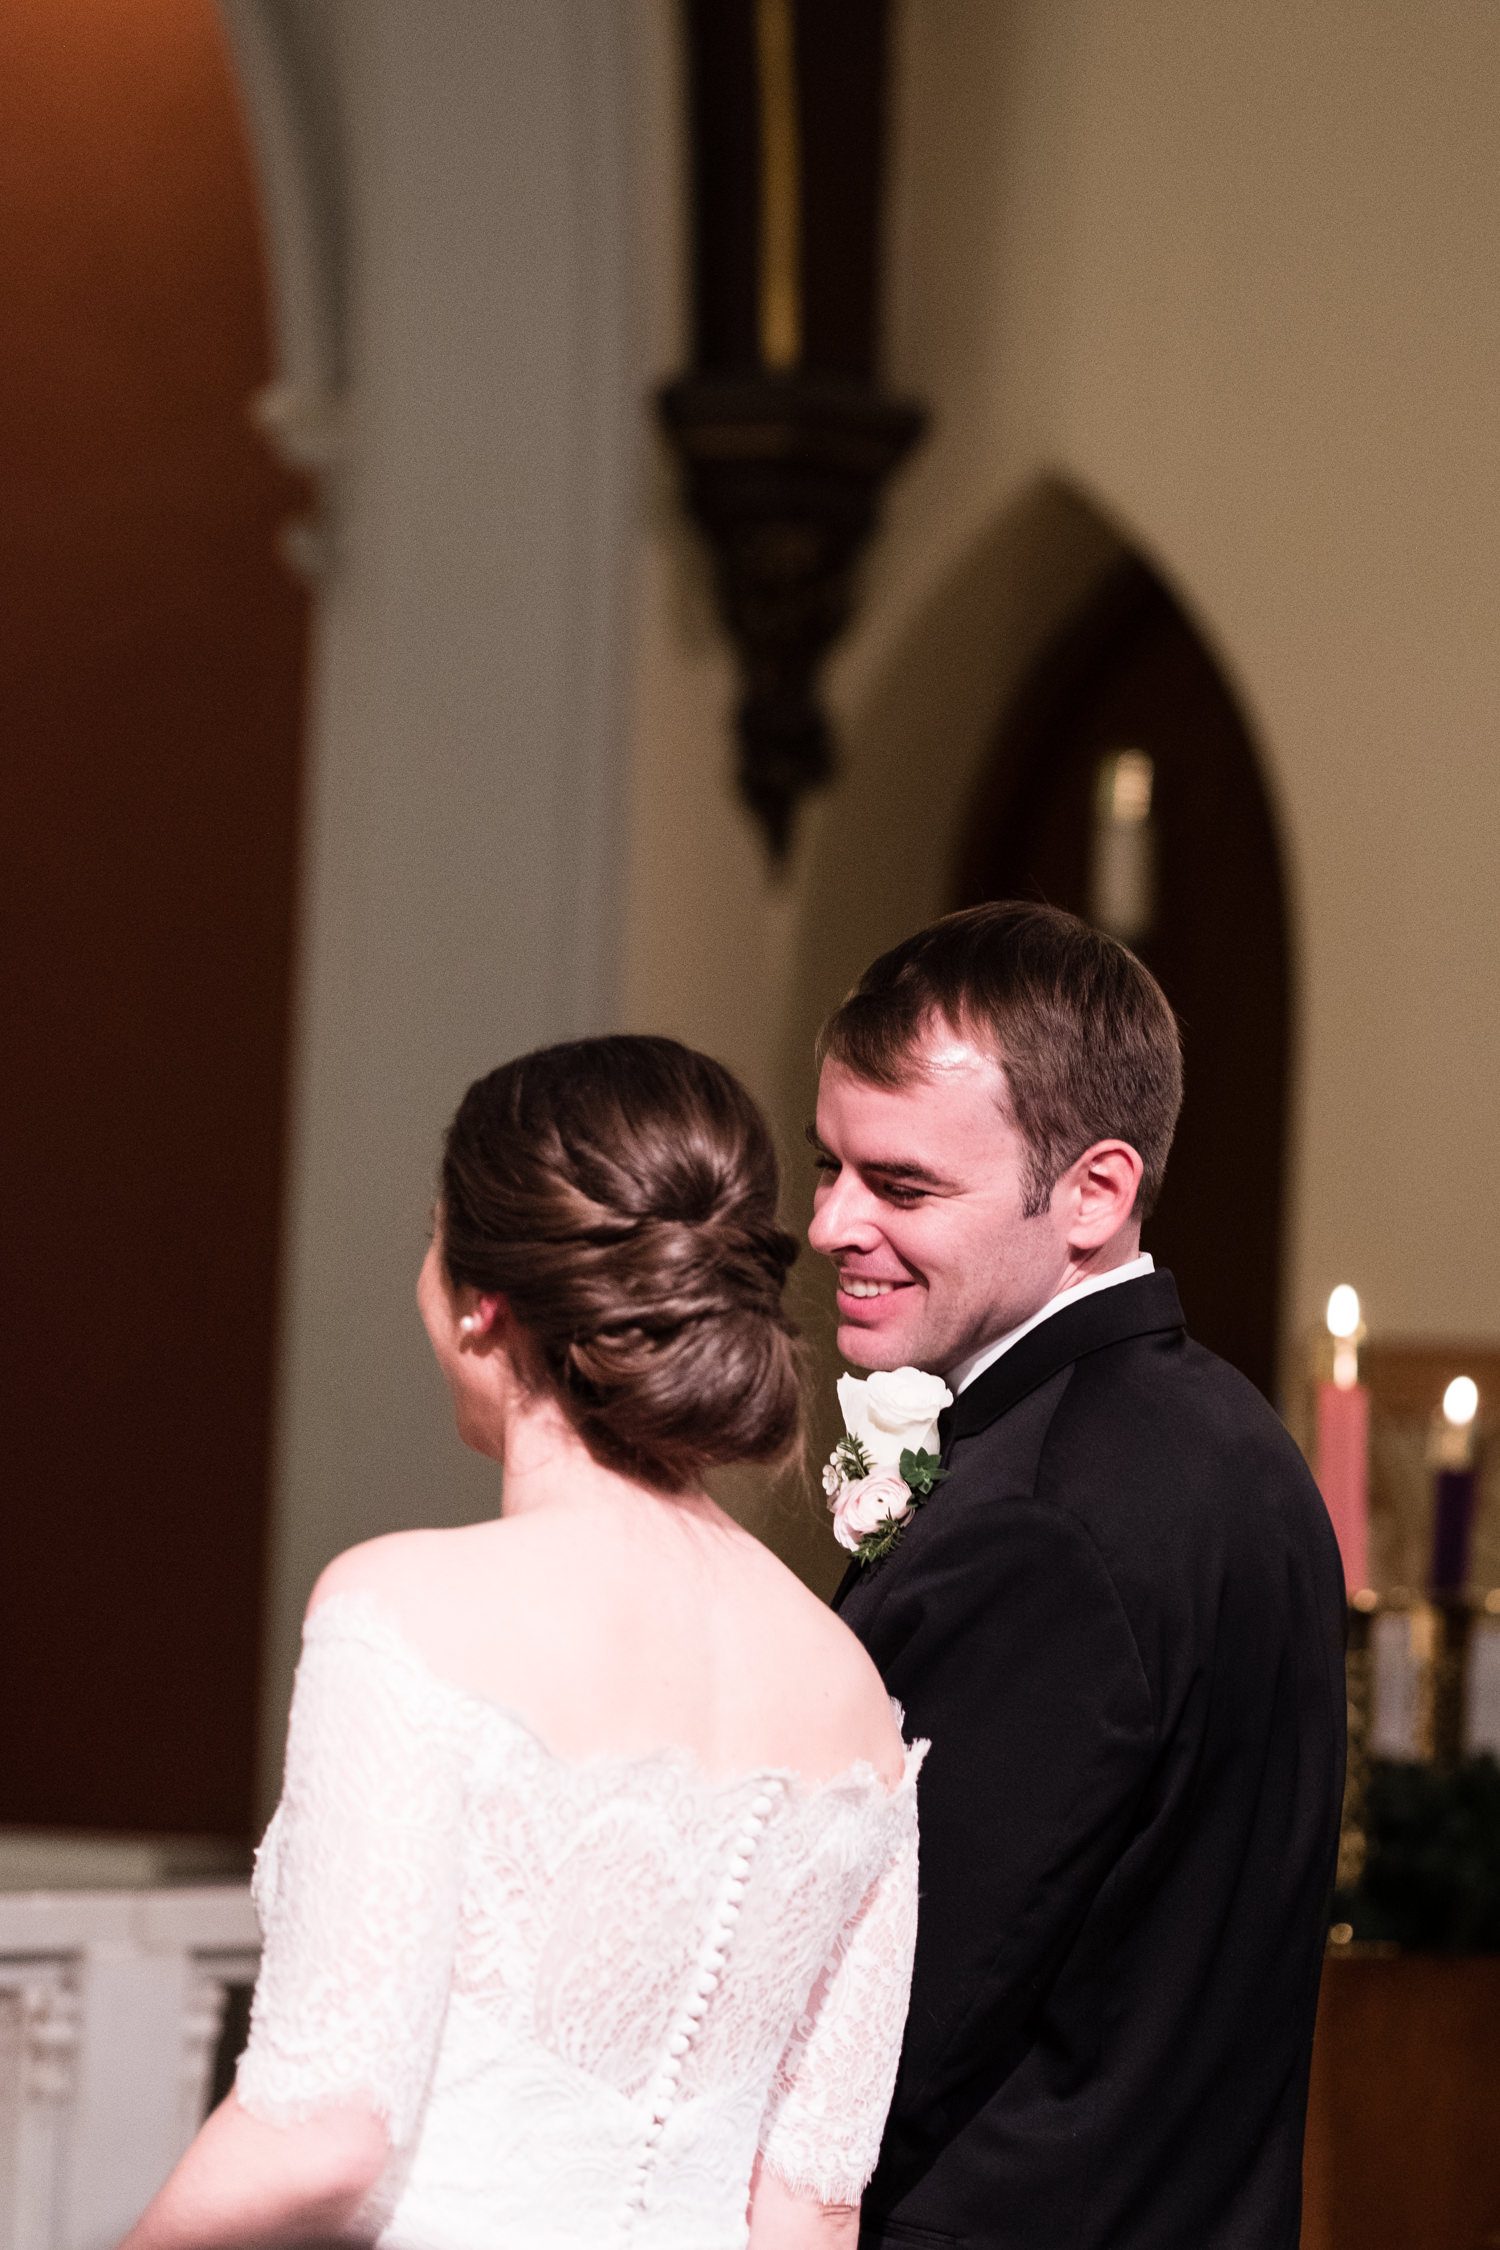 Kate_Phil_Currier_Museum_Wedding_New Hampshire-35.jpg